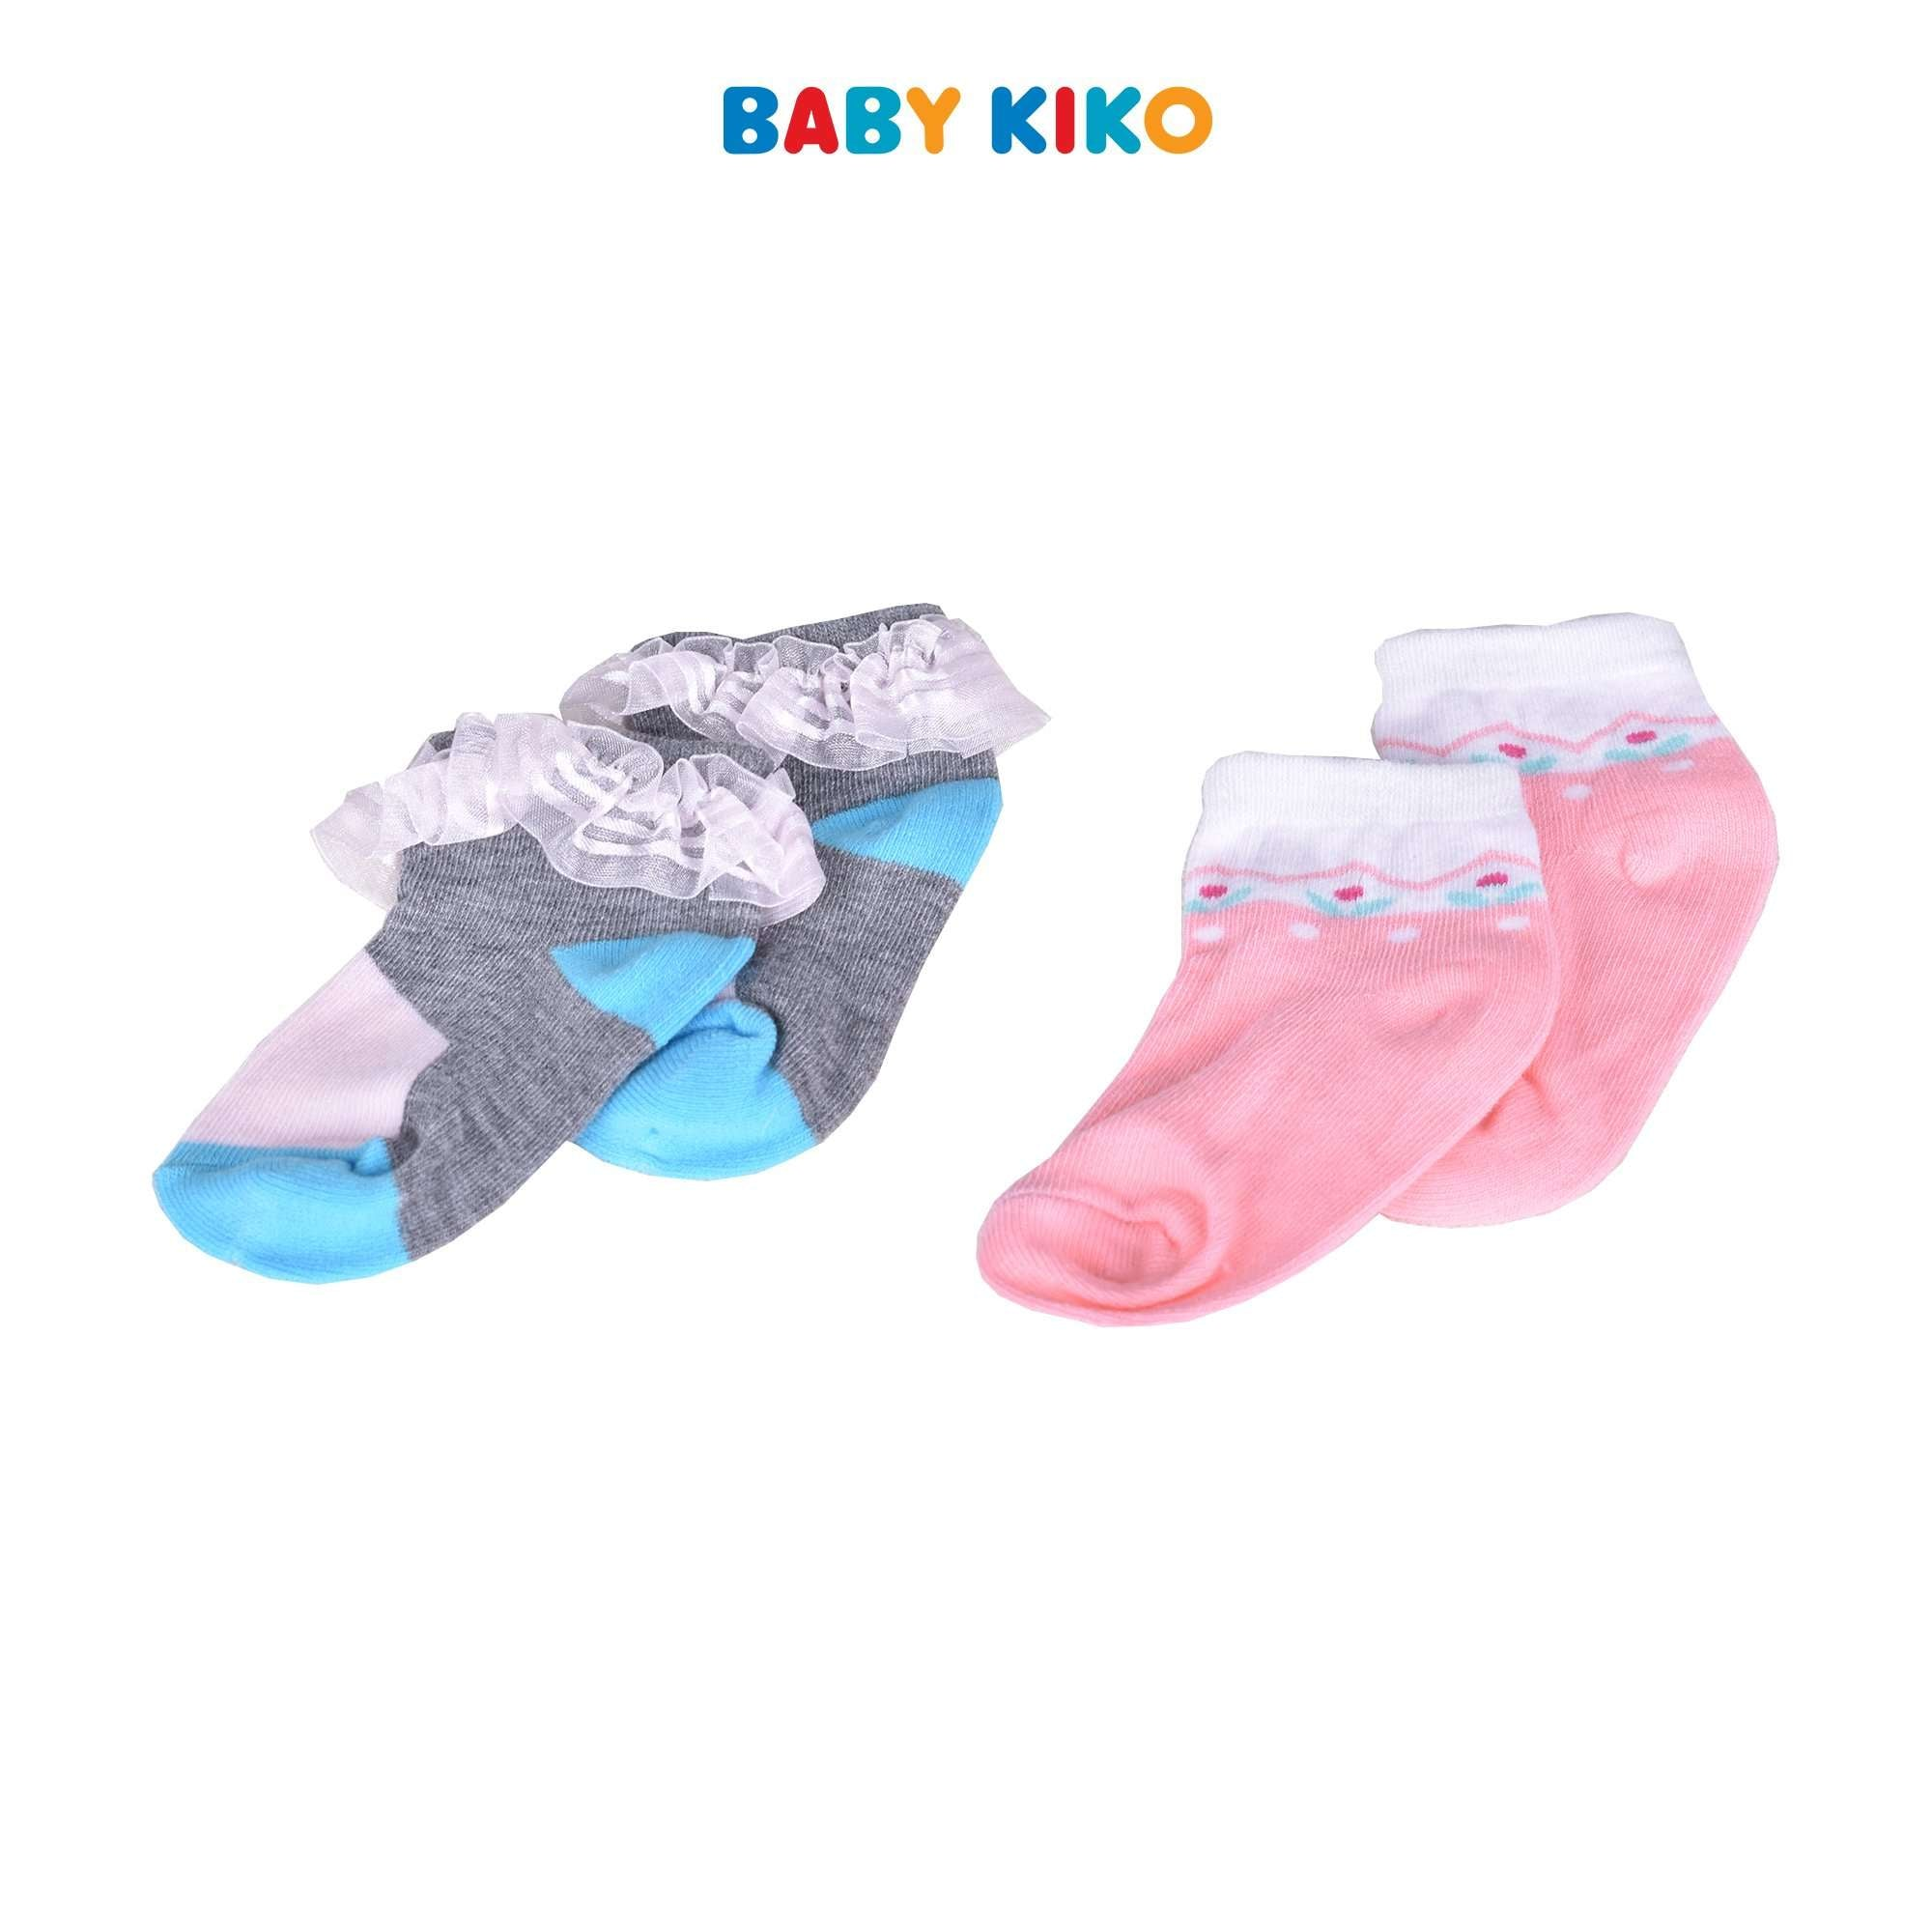 Baby KIKO Baby Girl Ankle Height Socks 320138-763 : Buy Baby KIKO online at CMG.MY